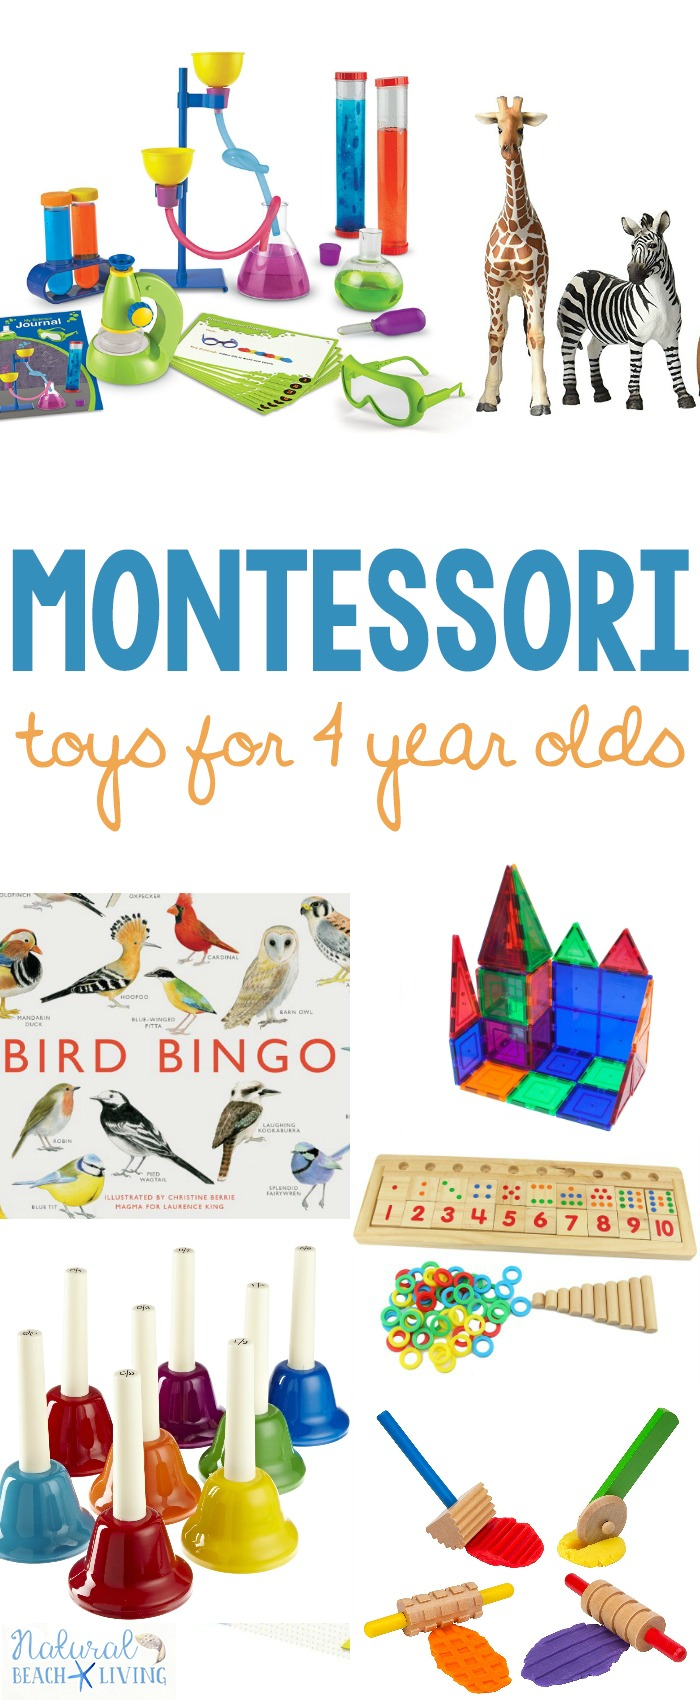 Toys For 45 Year Olds : The ultimate guide for best montessori toys year